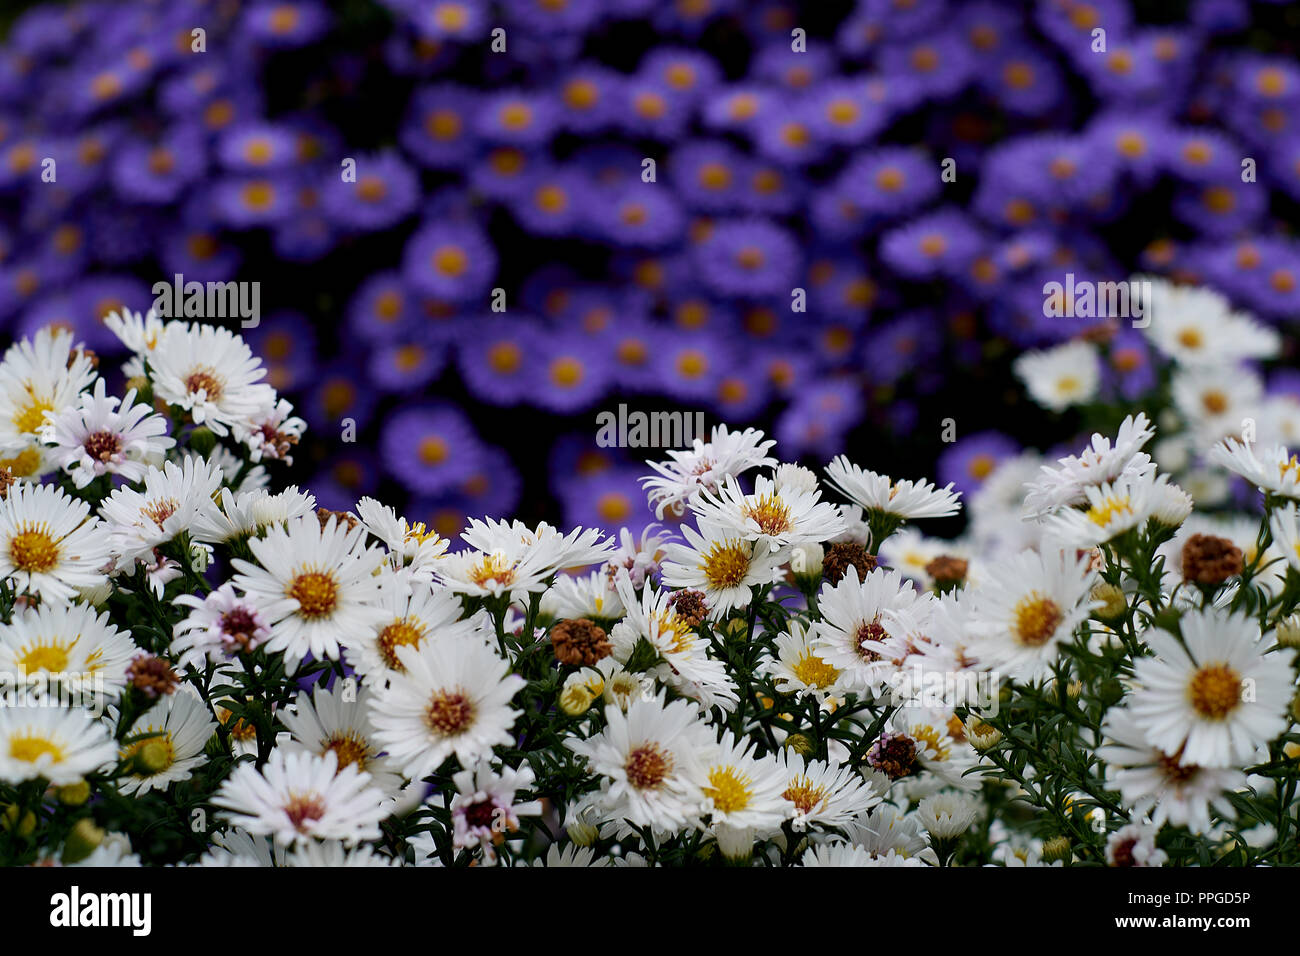 Blue And White Flowers In A Park Stock Photo 220408434 Alamy